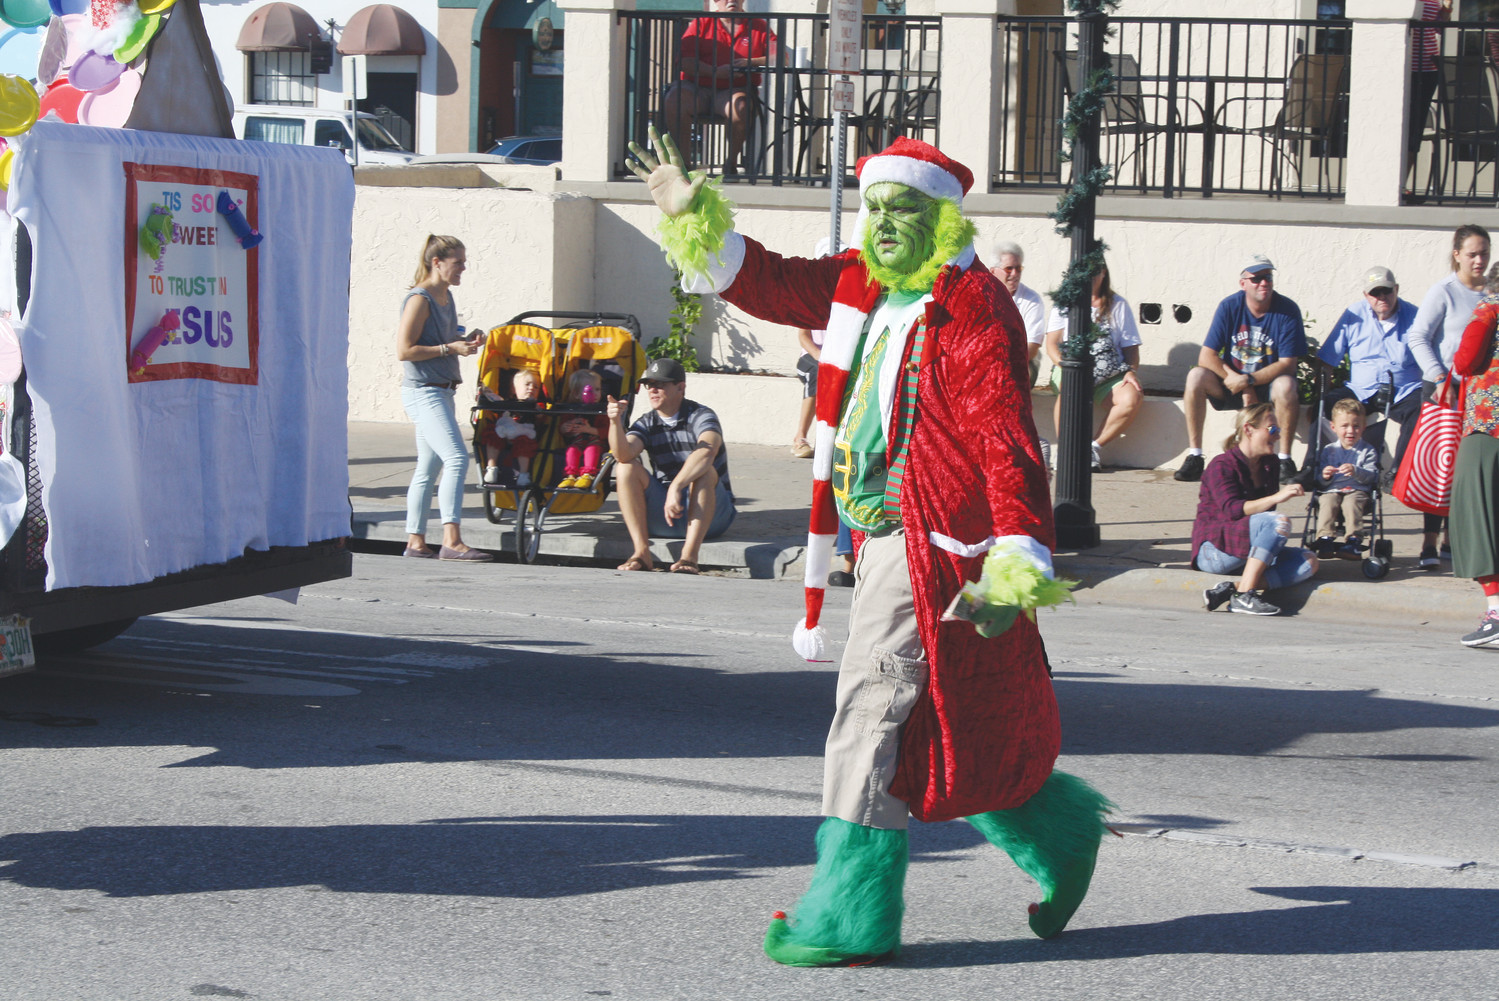 The Grinch makes an appearance at the parade.